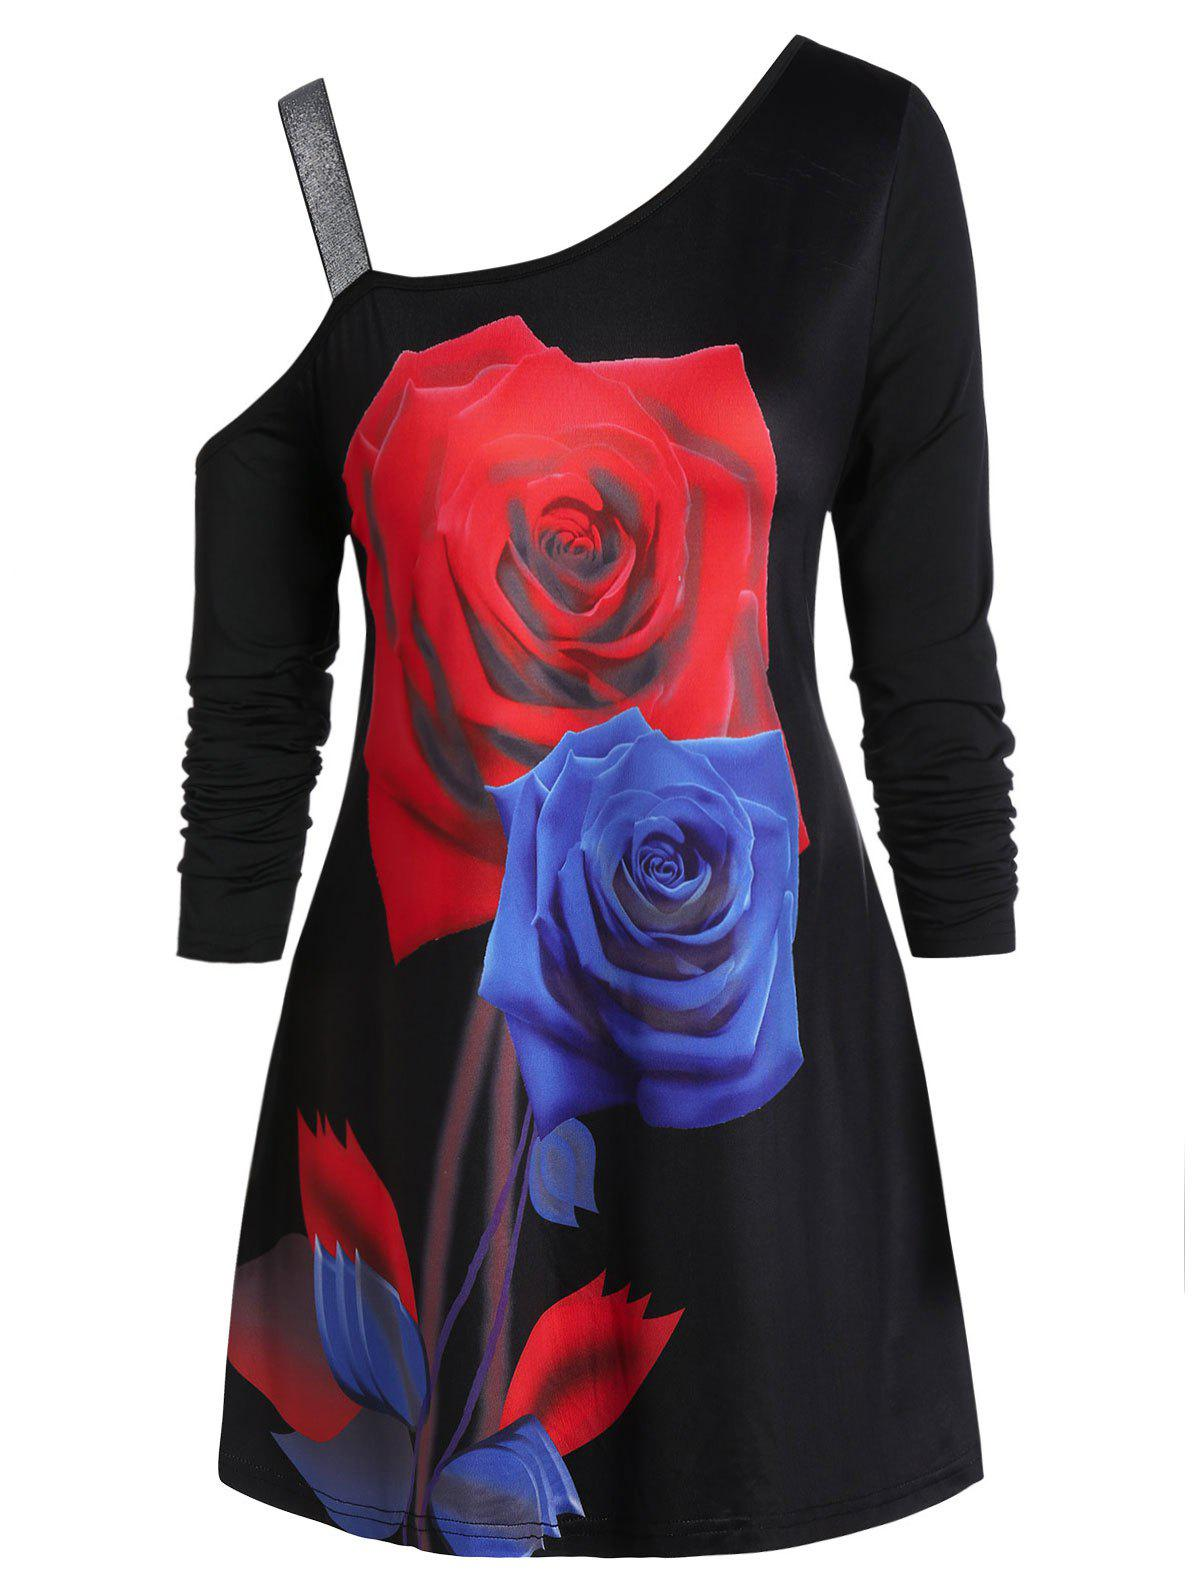 Plus Size Rose Print Skew Neck T Shirt - BLACK 4X